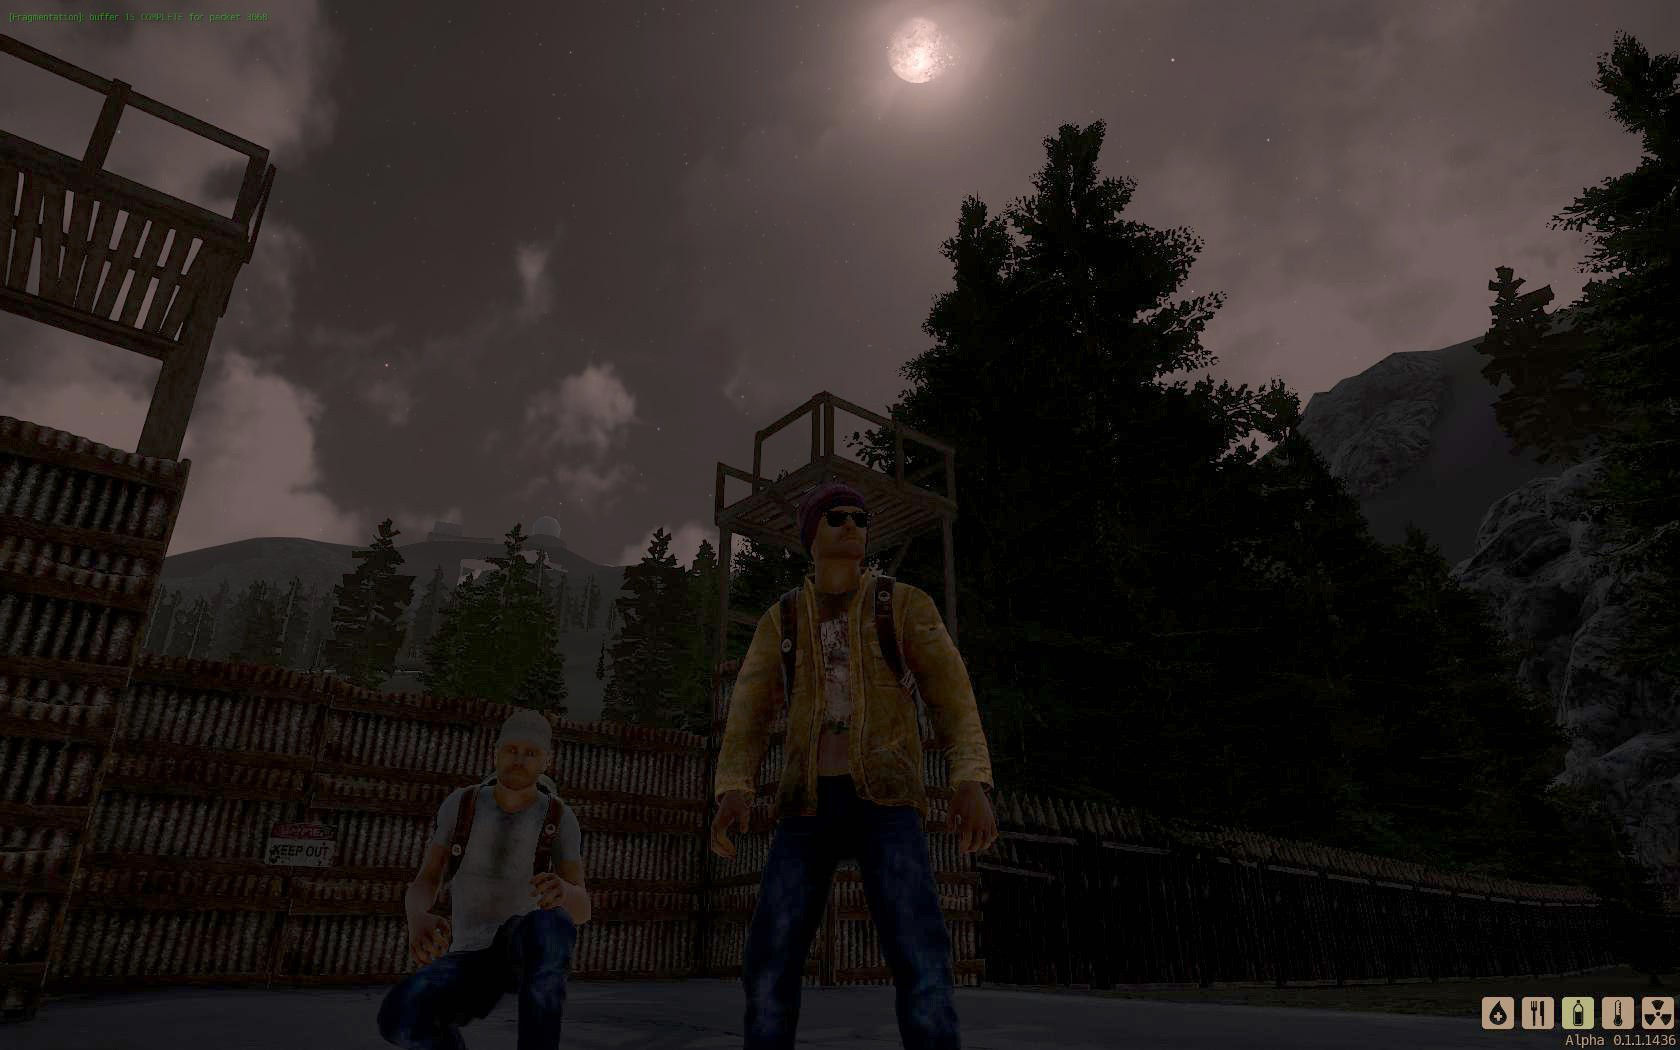 Yellow puffer jacket, Caterpillar boots… If Timberland starts selling open worlds with a quickly tedious sense of purposelessness… woah, deja vu!